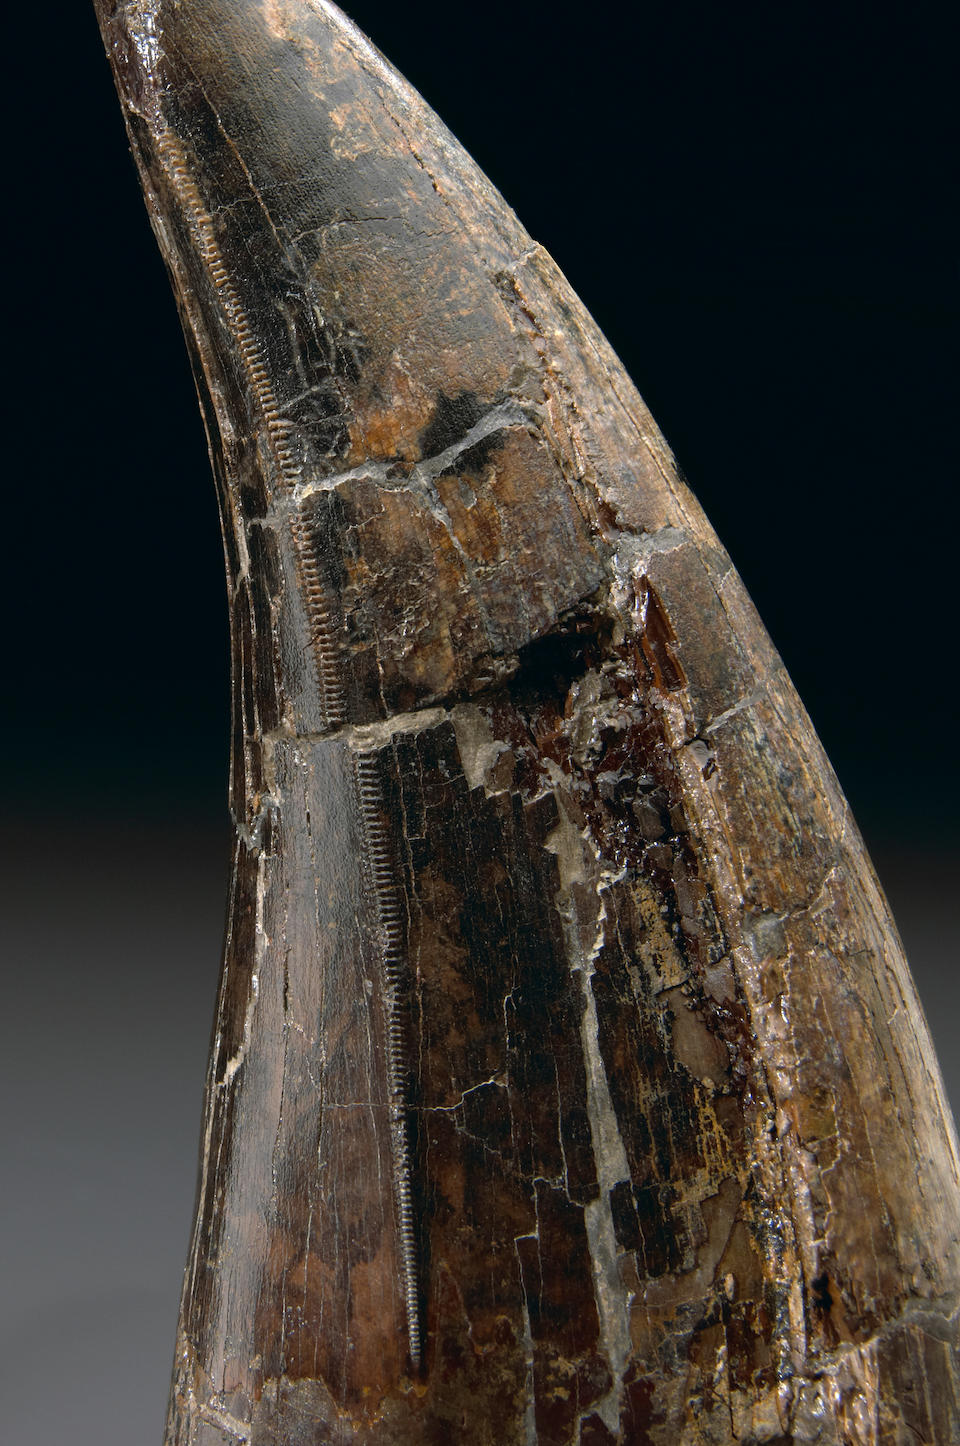 Recent T. rex Discovery – One of the Largest T. rex Teeth Ever Found